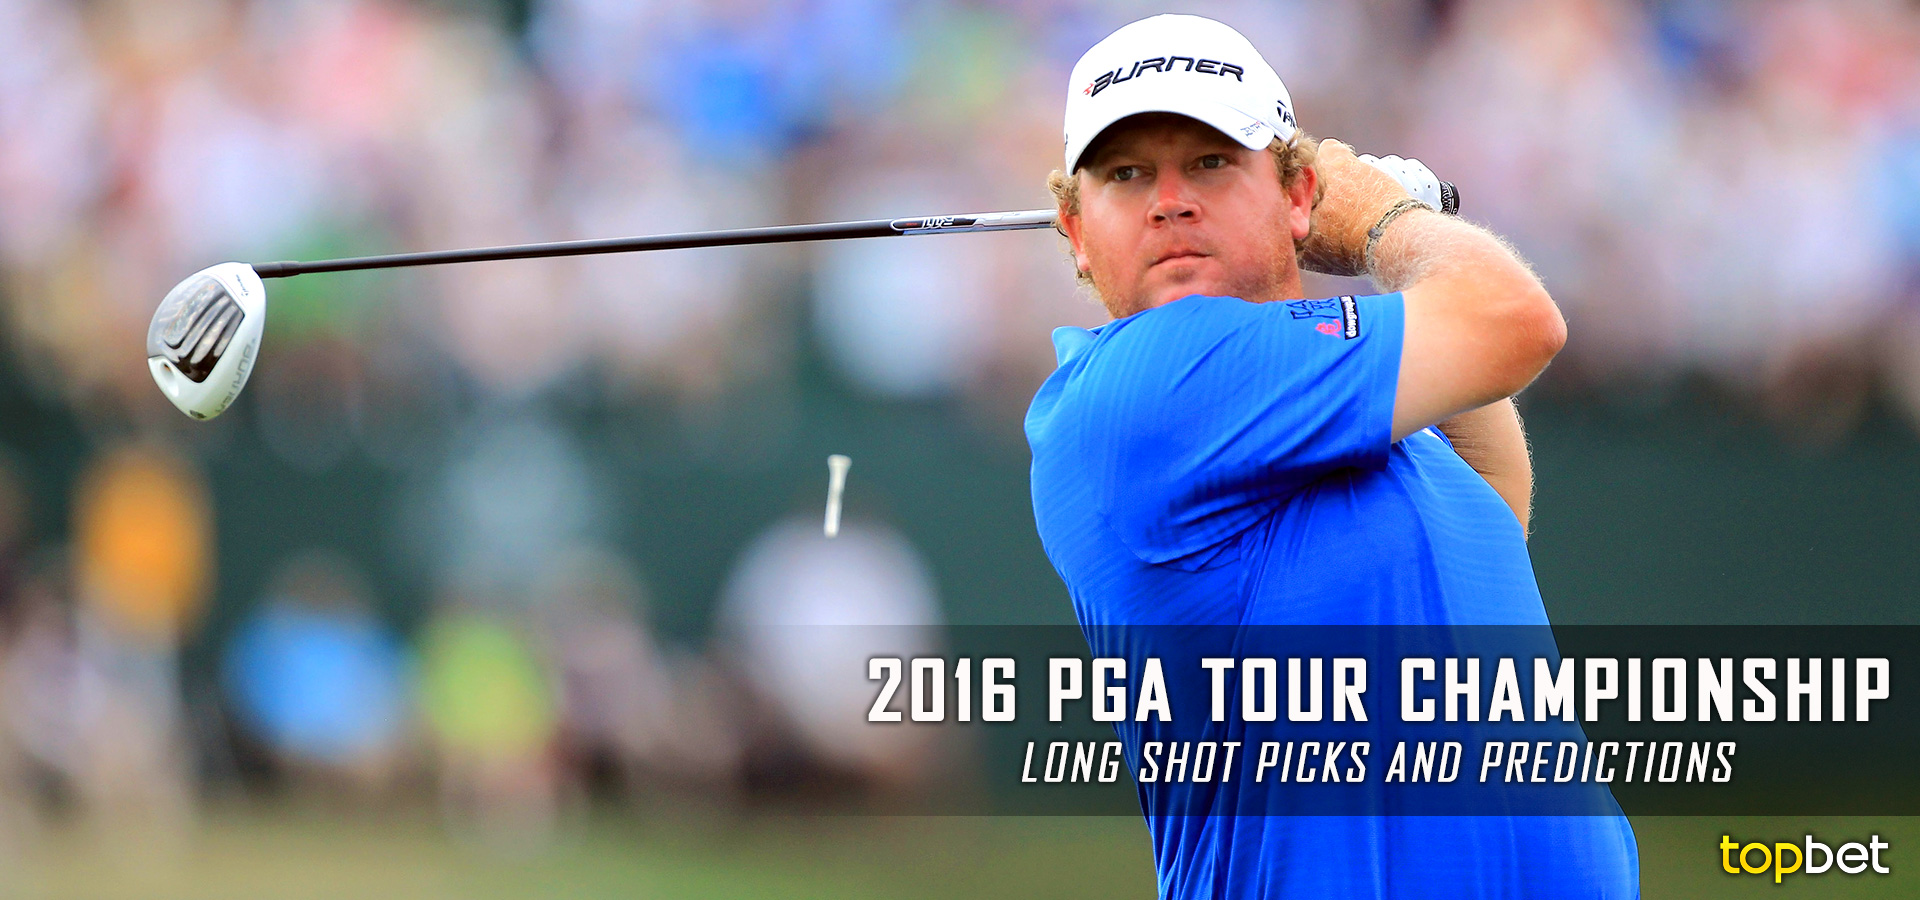 PGA: 2016 PGA Tour Championship Long Shots And Value Predictions